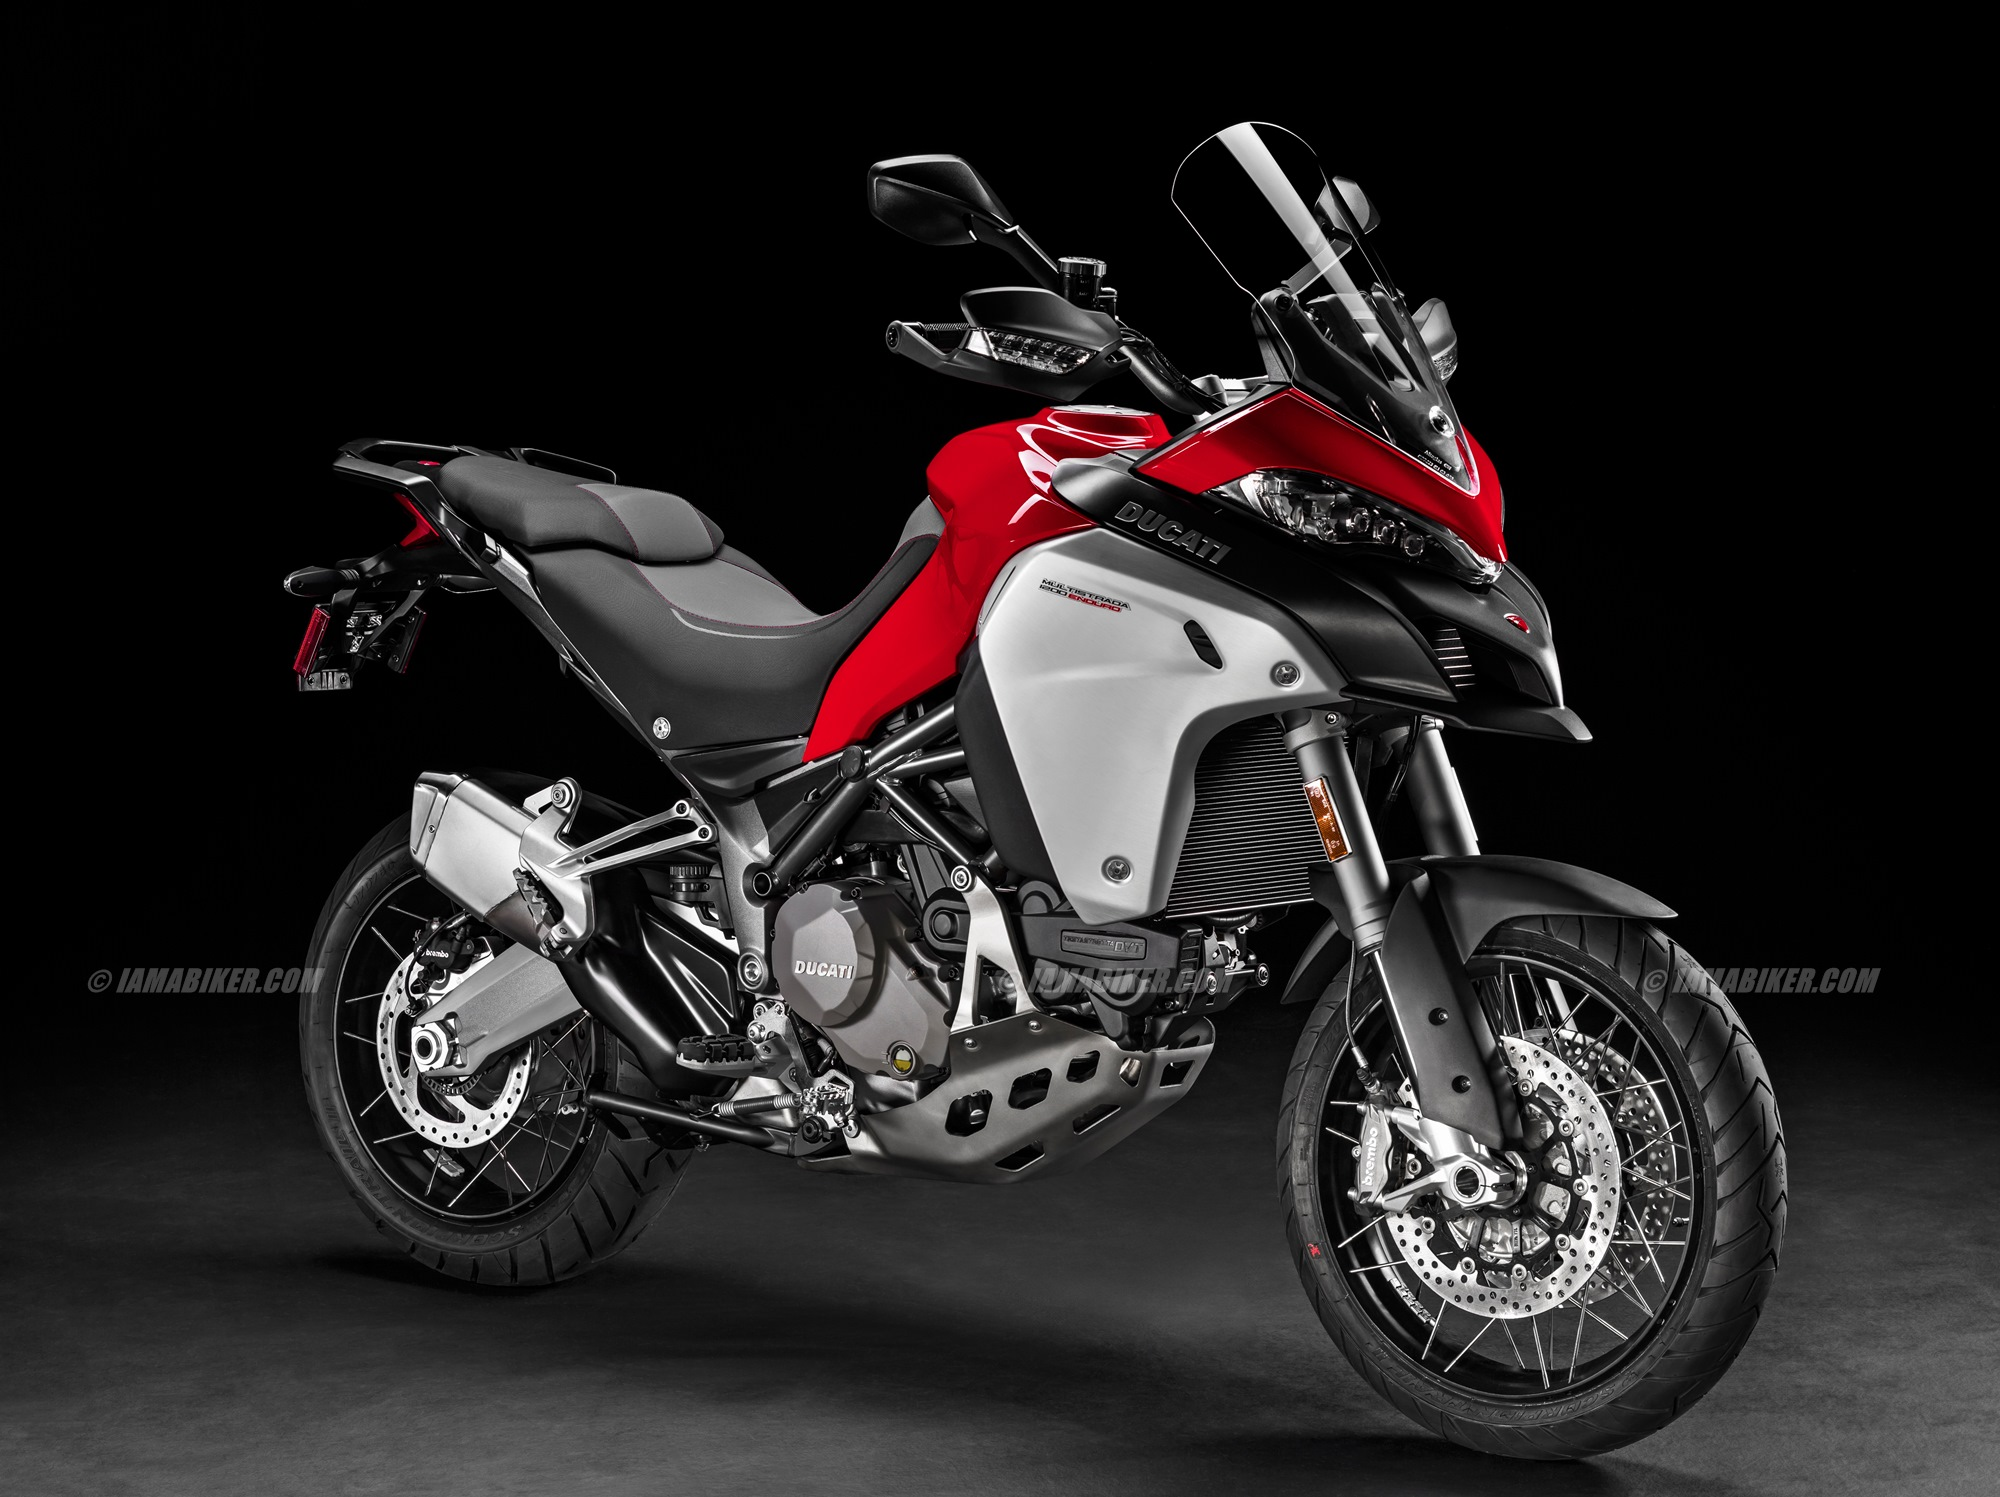 2016 Ducati MULTISTRADA 1200 ENDURO red